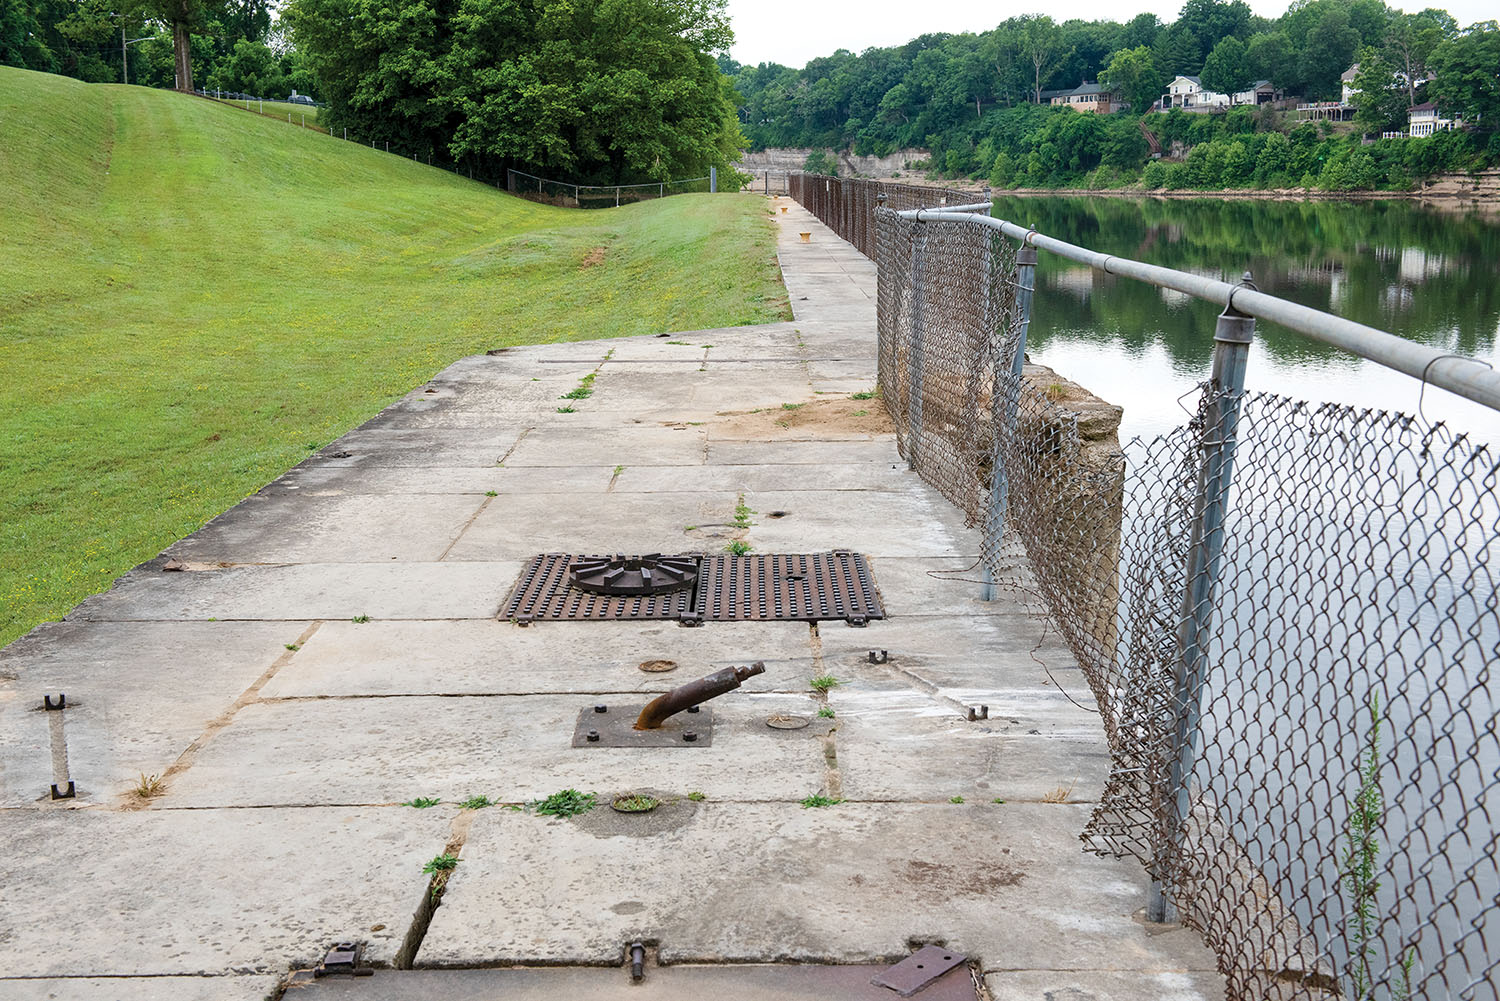 This is the land wall on the shoreline of the Cumberland River in Nashville, Tennessee. The Nashville Engineer District operated the old navigation lock from 1907 to 1956. Remnants of the lock's land wall, a  lockmaster's home and other outbuildings remain at Lock 2 Park. (Photo by Lee Roberts/Nashville Engineer District)